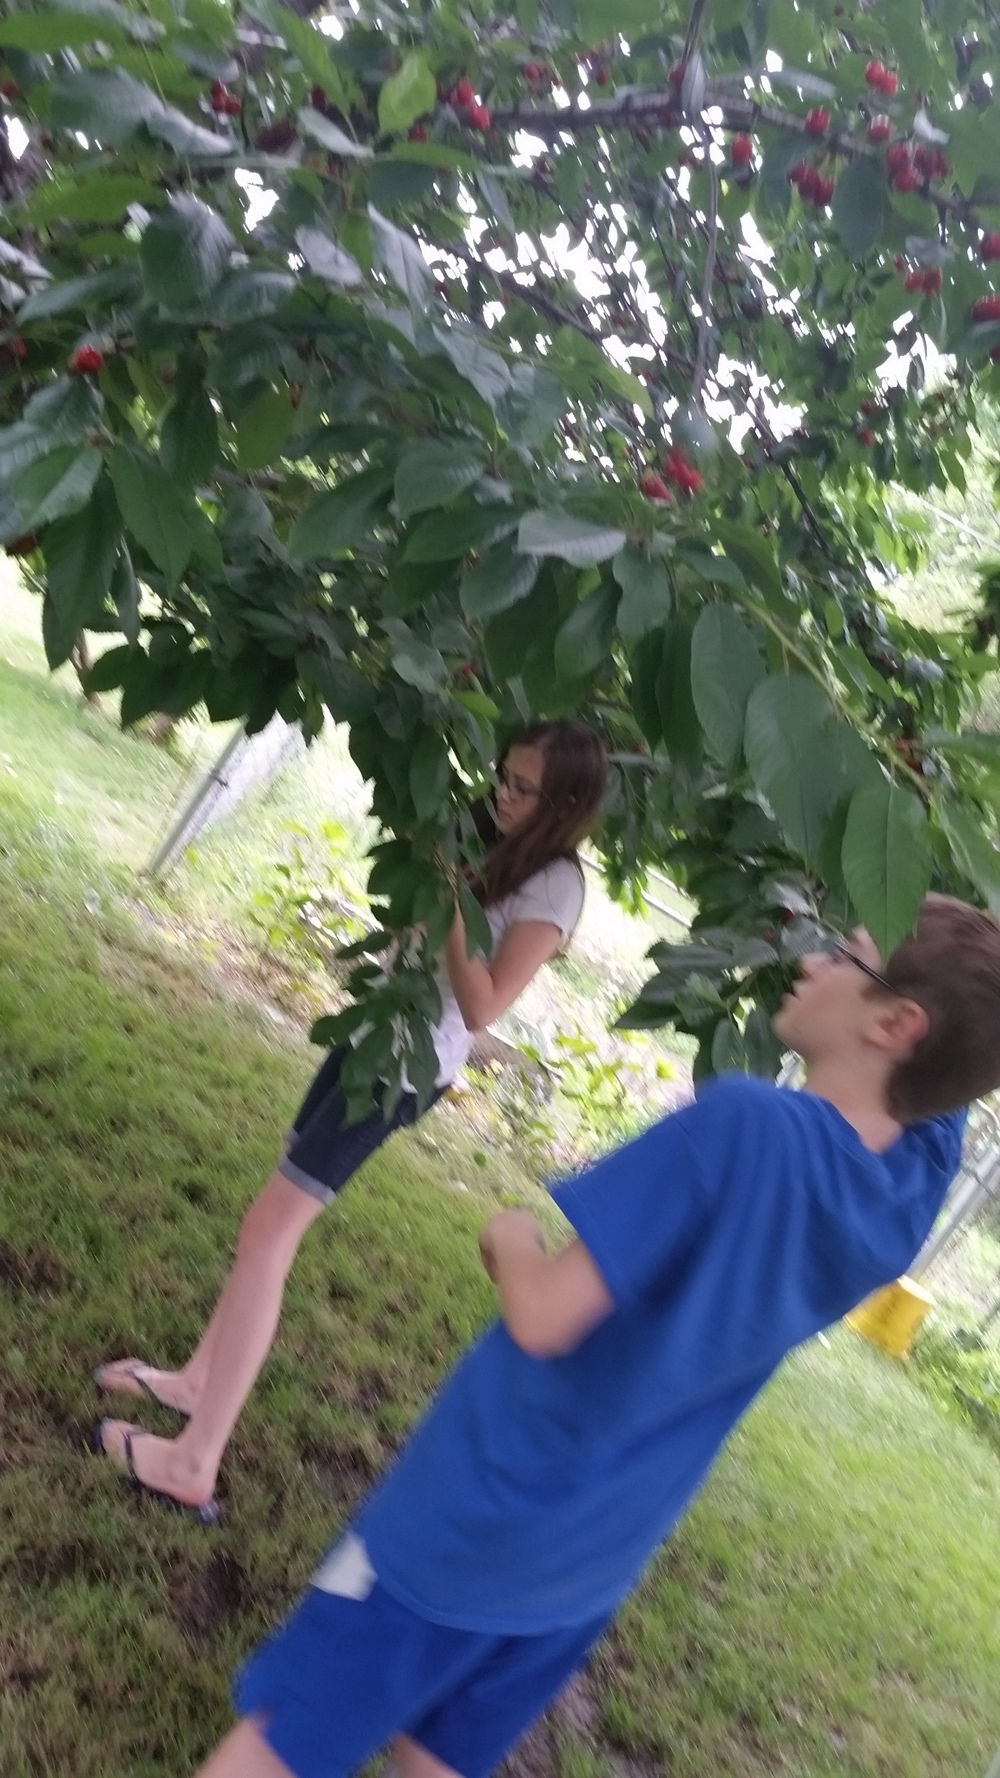 Now I teach my kids how to pick cherries in my parent's garden.